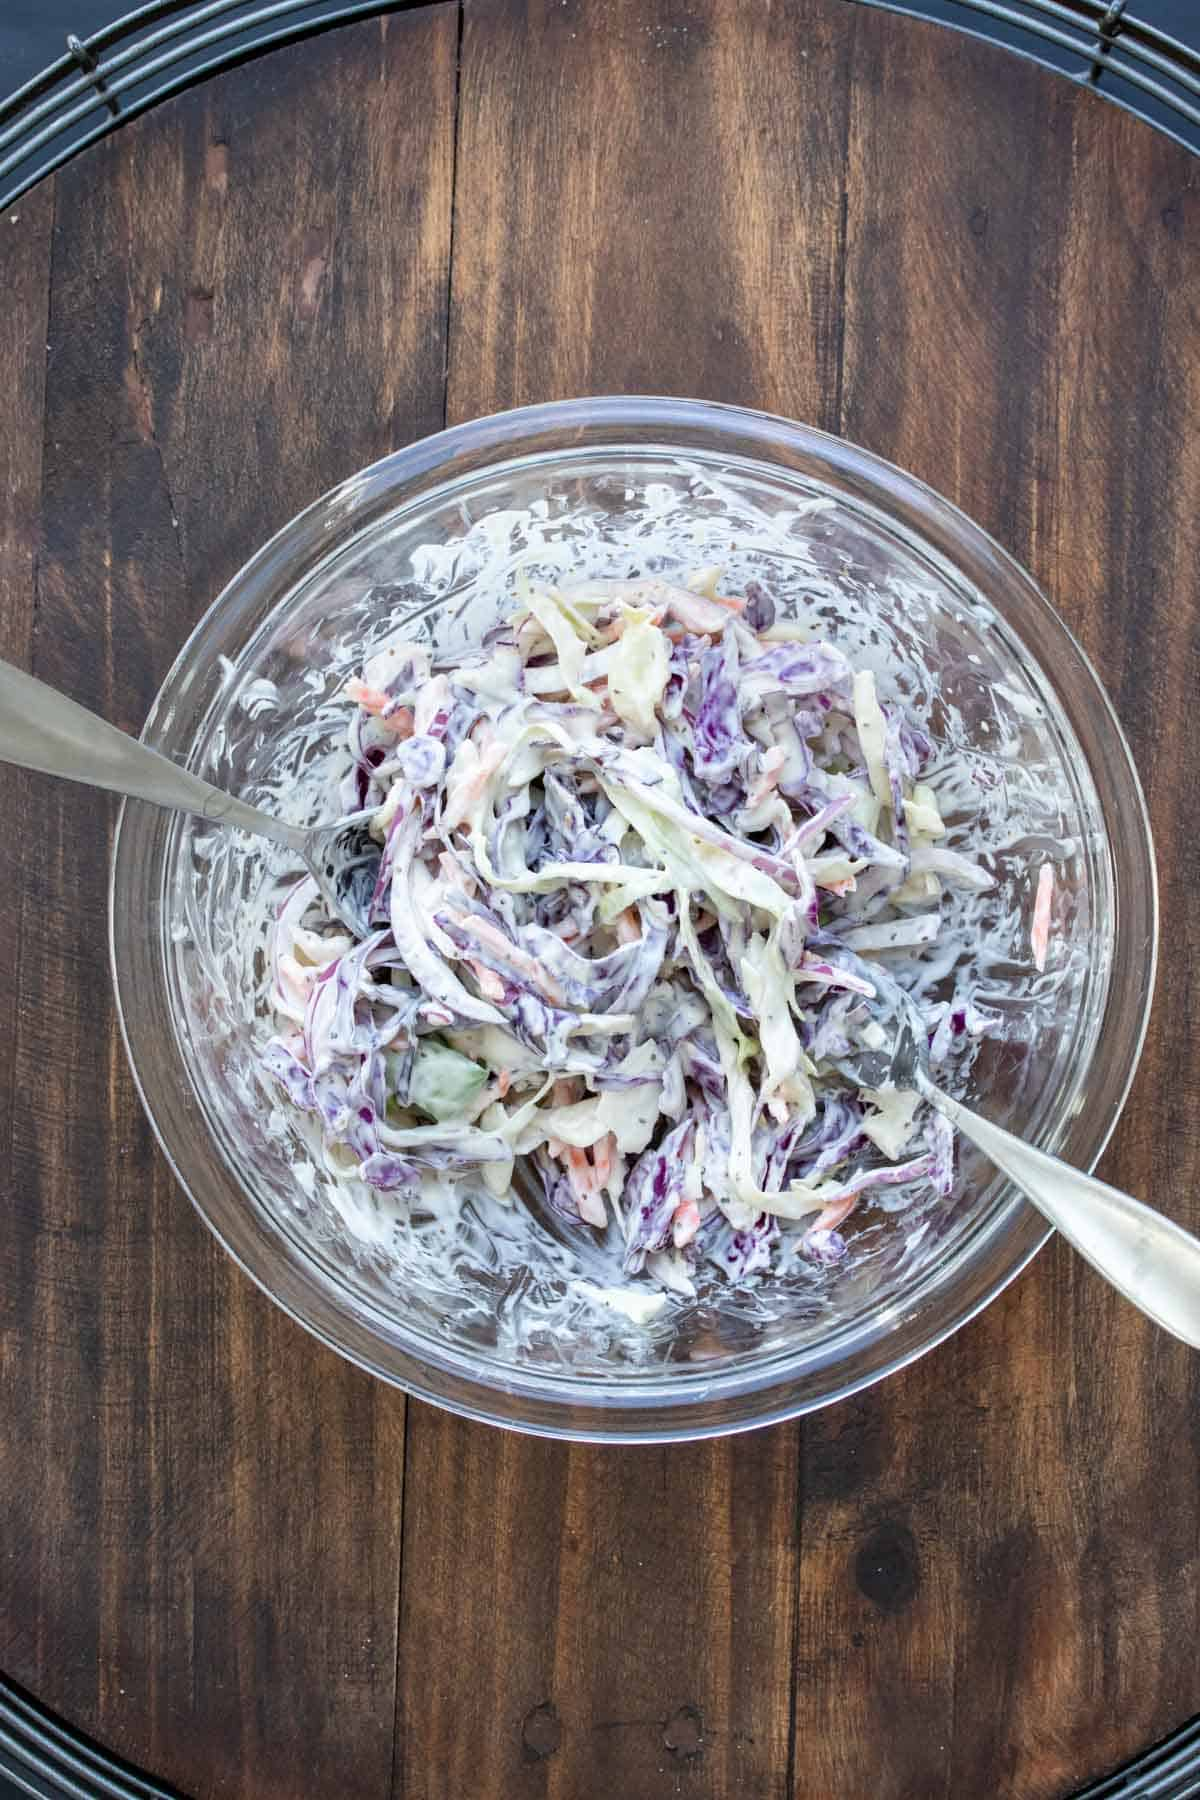 Glass bowl with forks mixing coleslaw inside